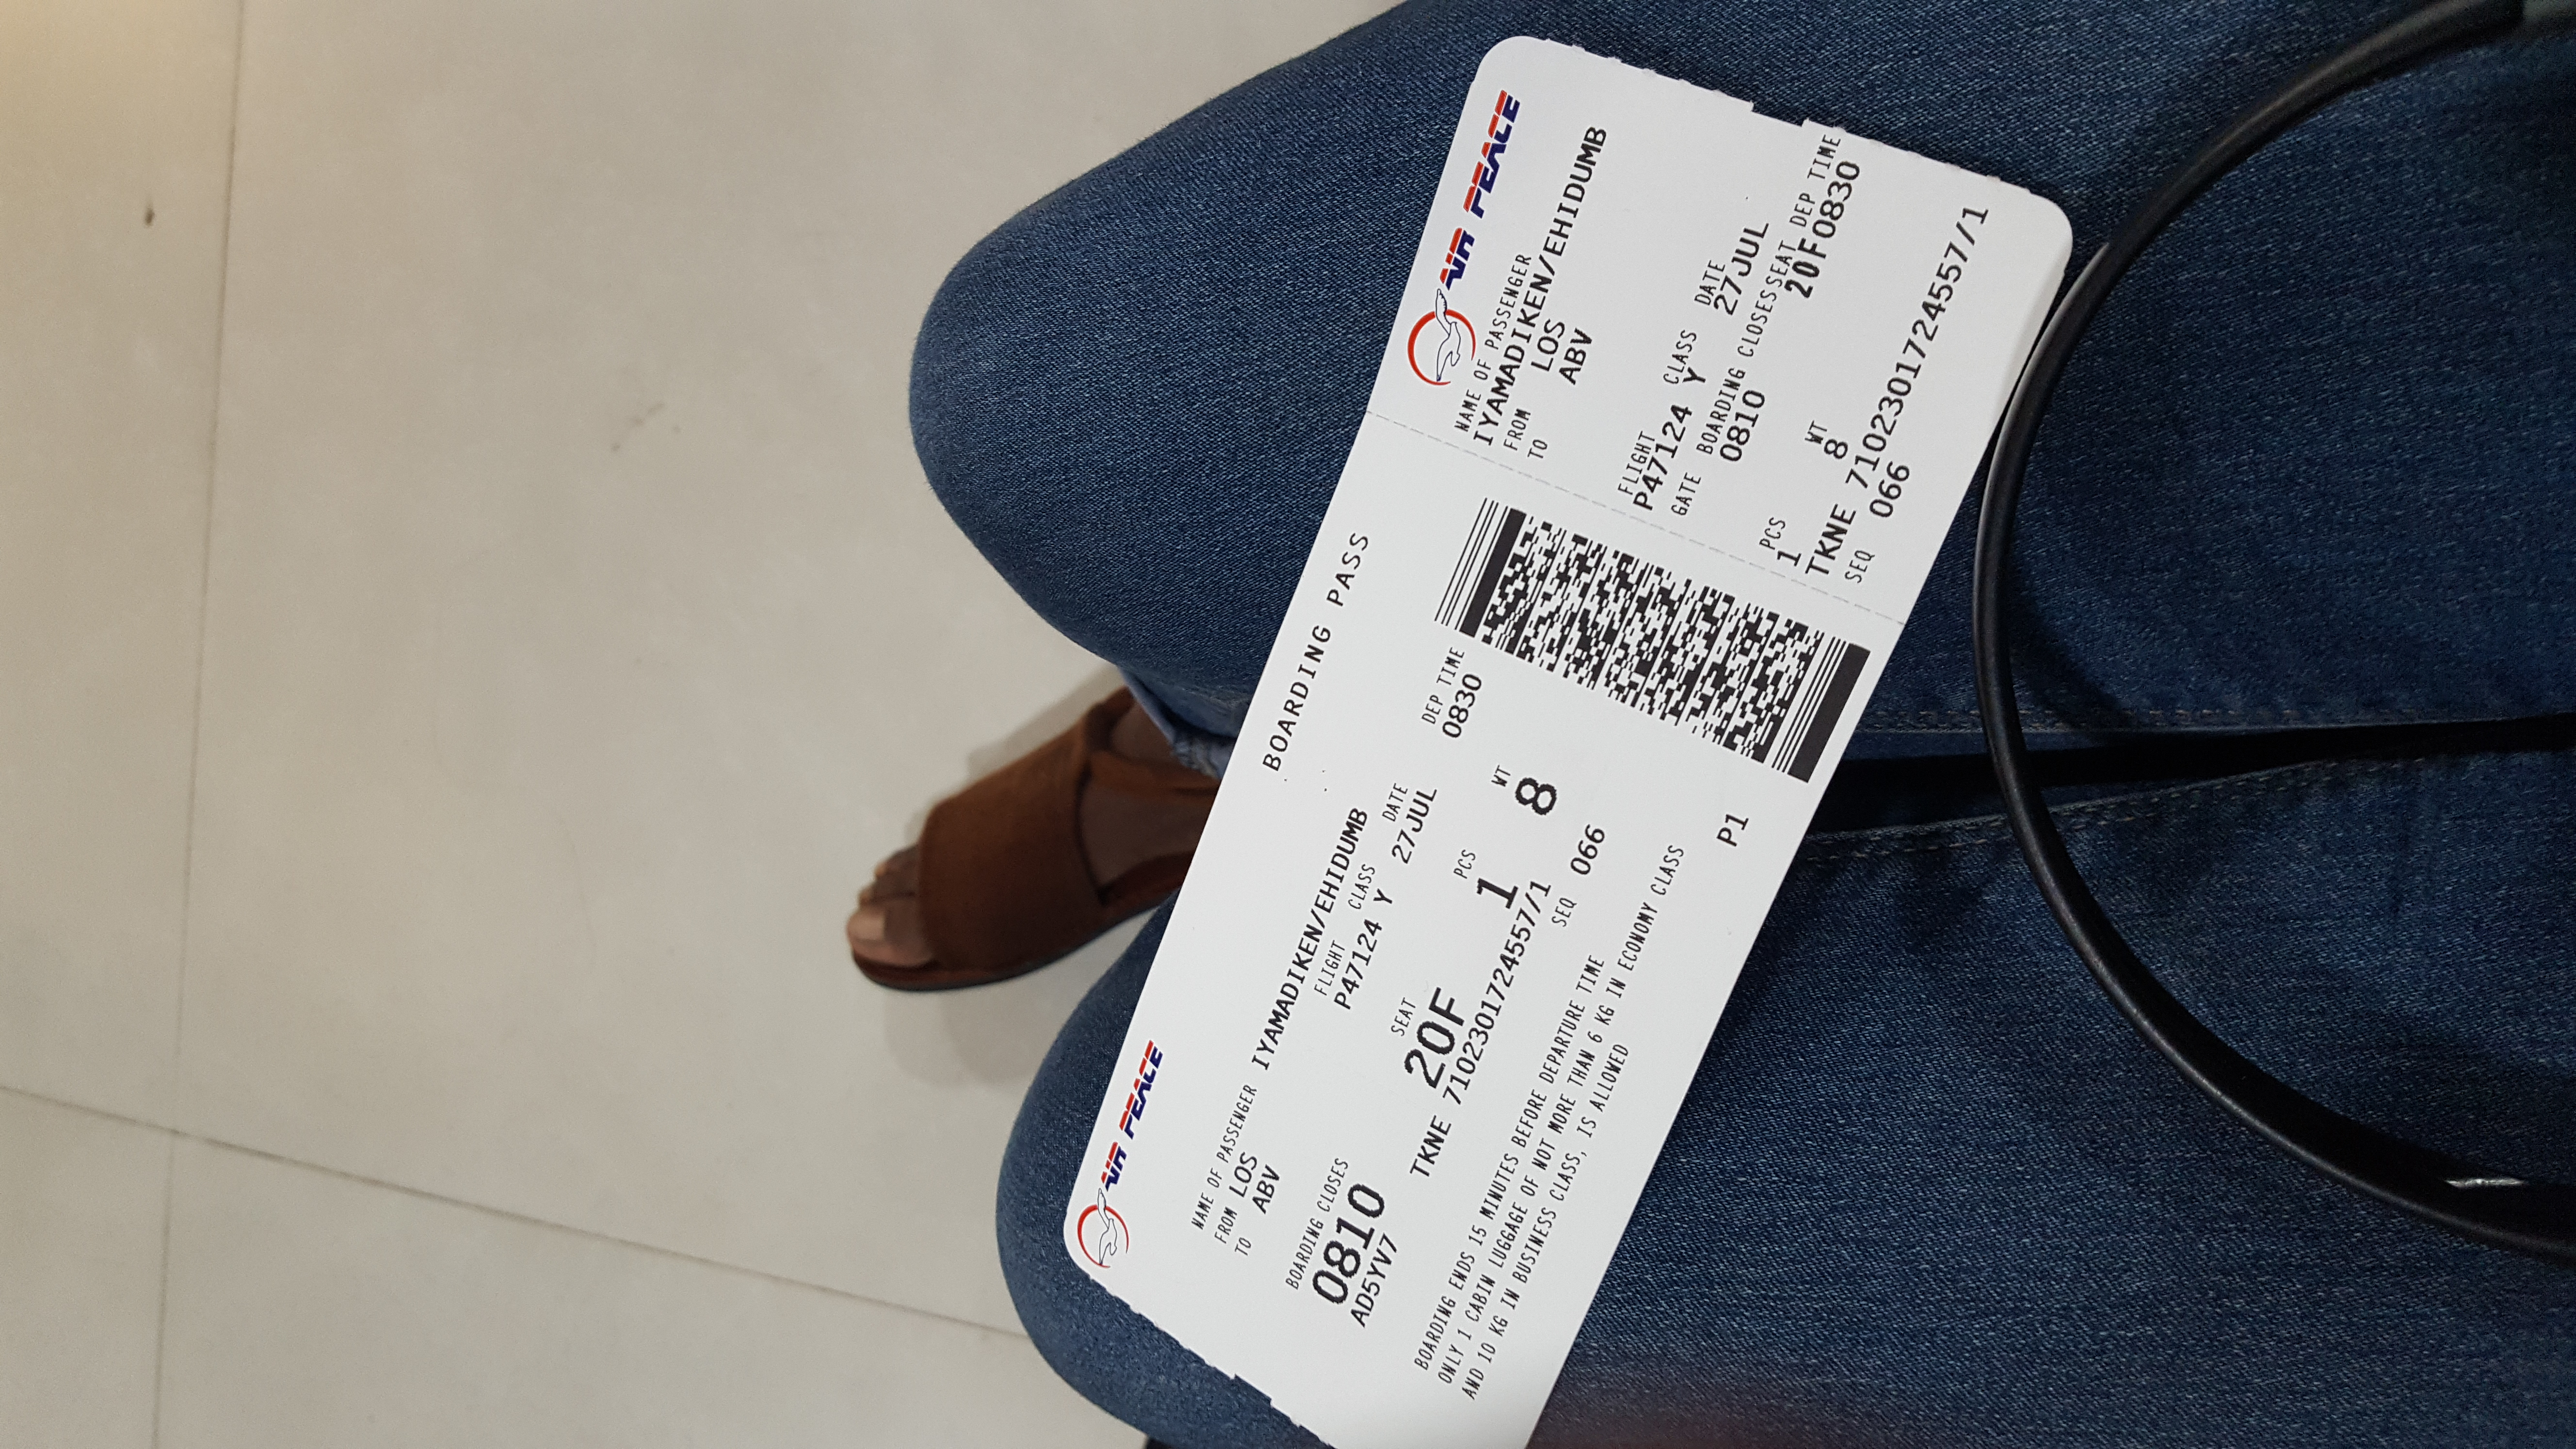 Air peace ticket